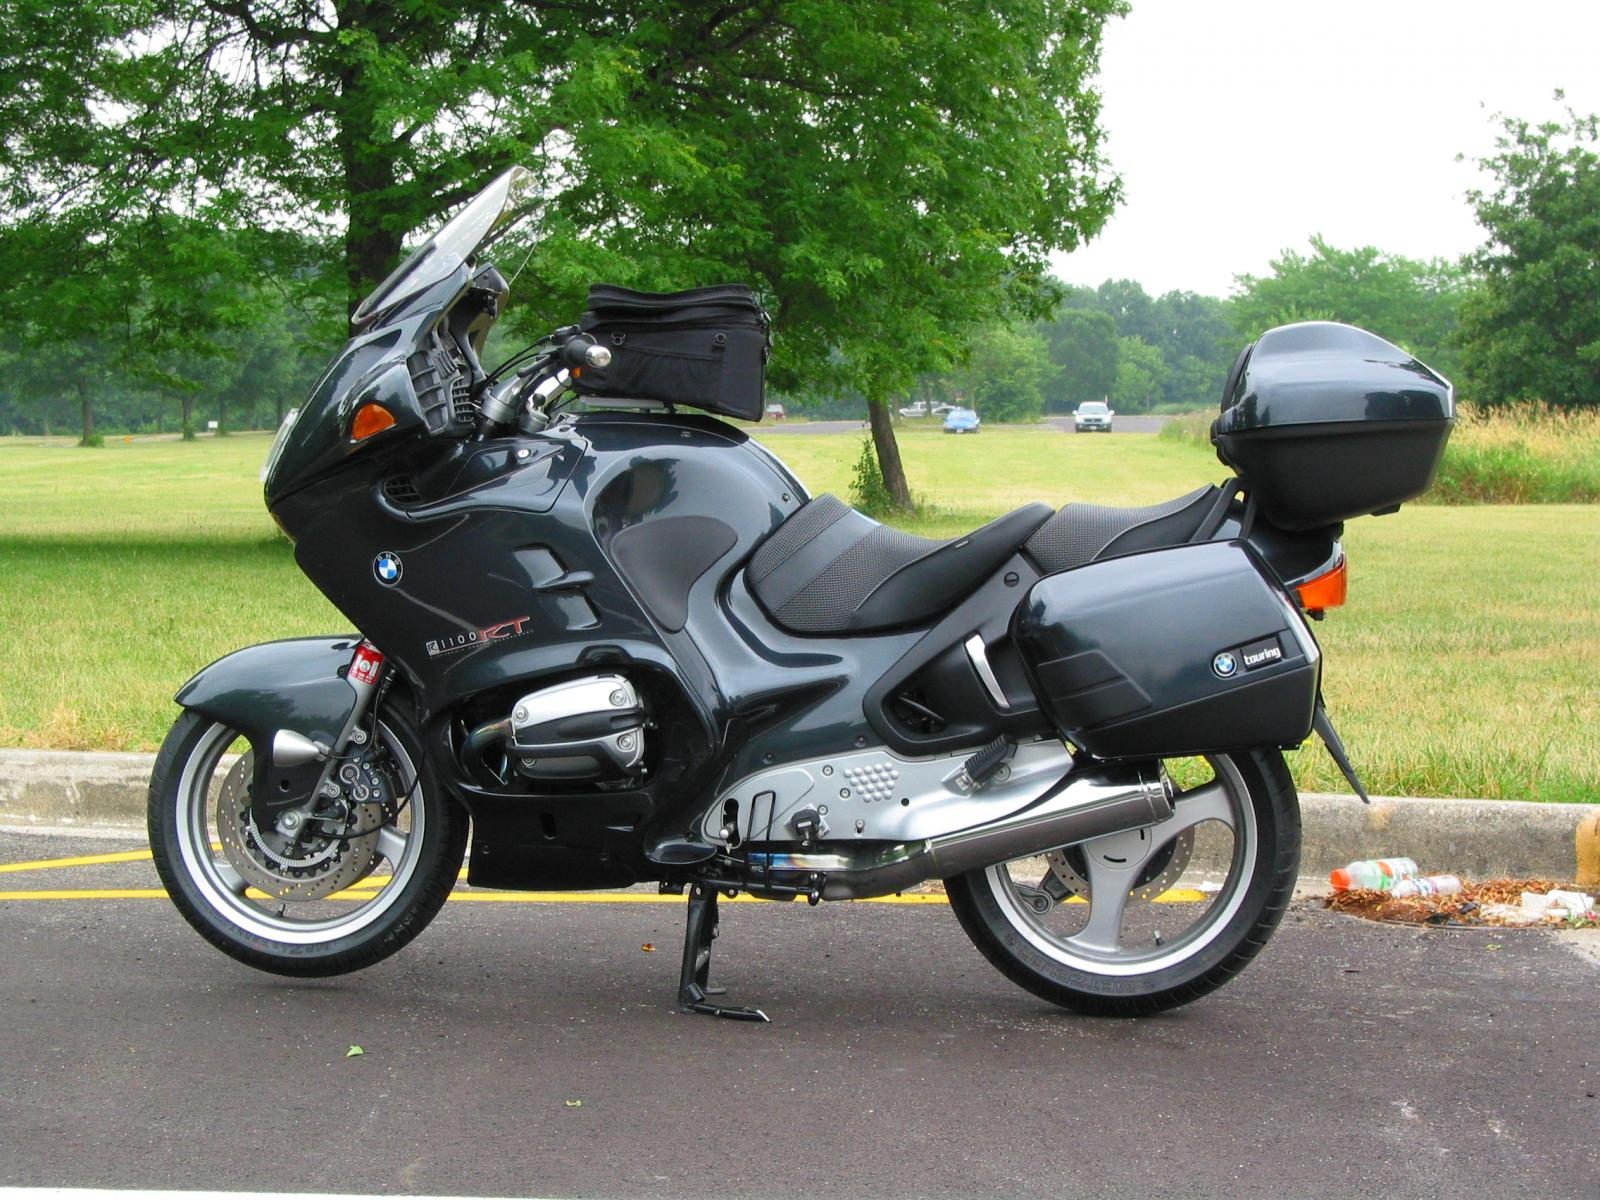 2000 bmw r1100rt moto zombdrive com. Black Bedroom Furniture Sets. Home Design Ideas